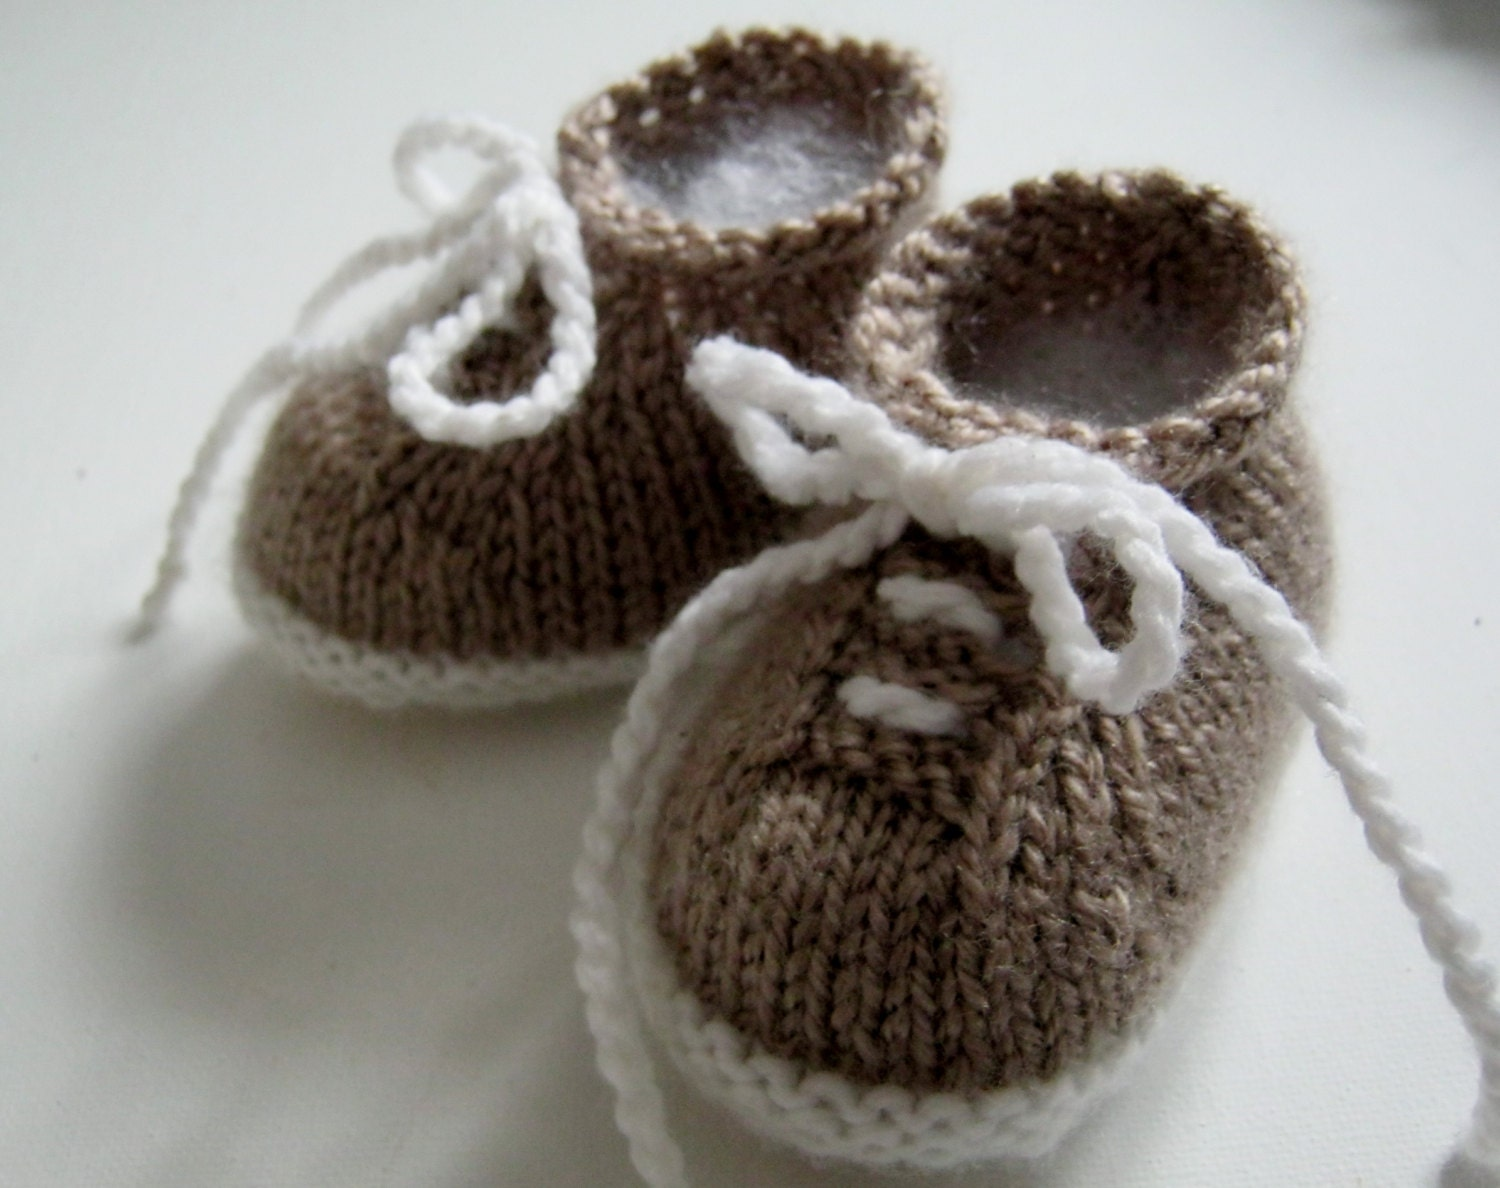 Knitting Pattern For Baby Tennis Shoes : PDF Pattern for Knitted tiny tennis shoes newborn to 6 months from MargoMadei...